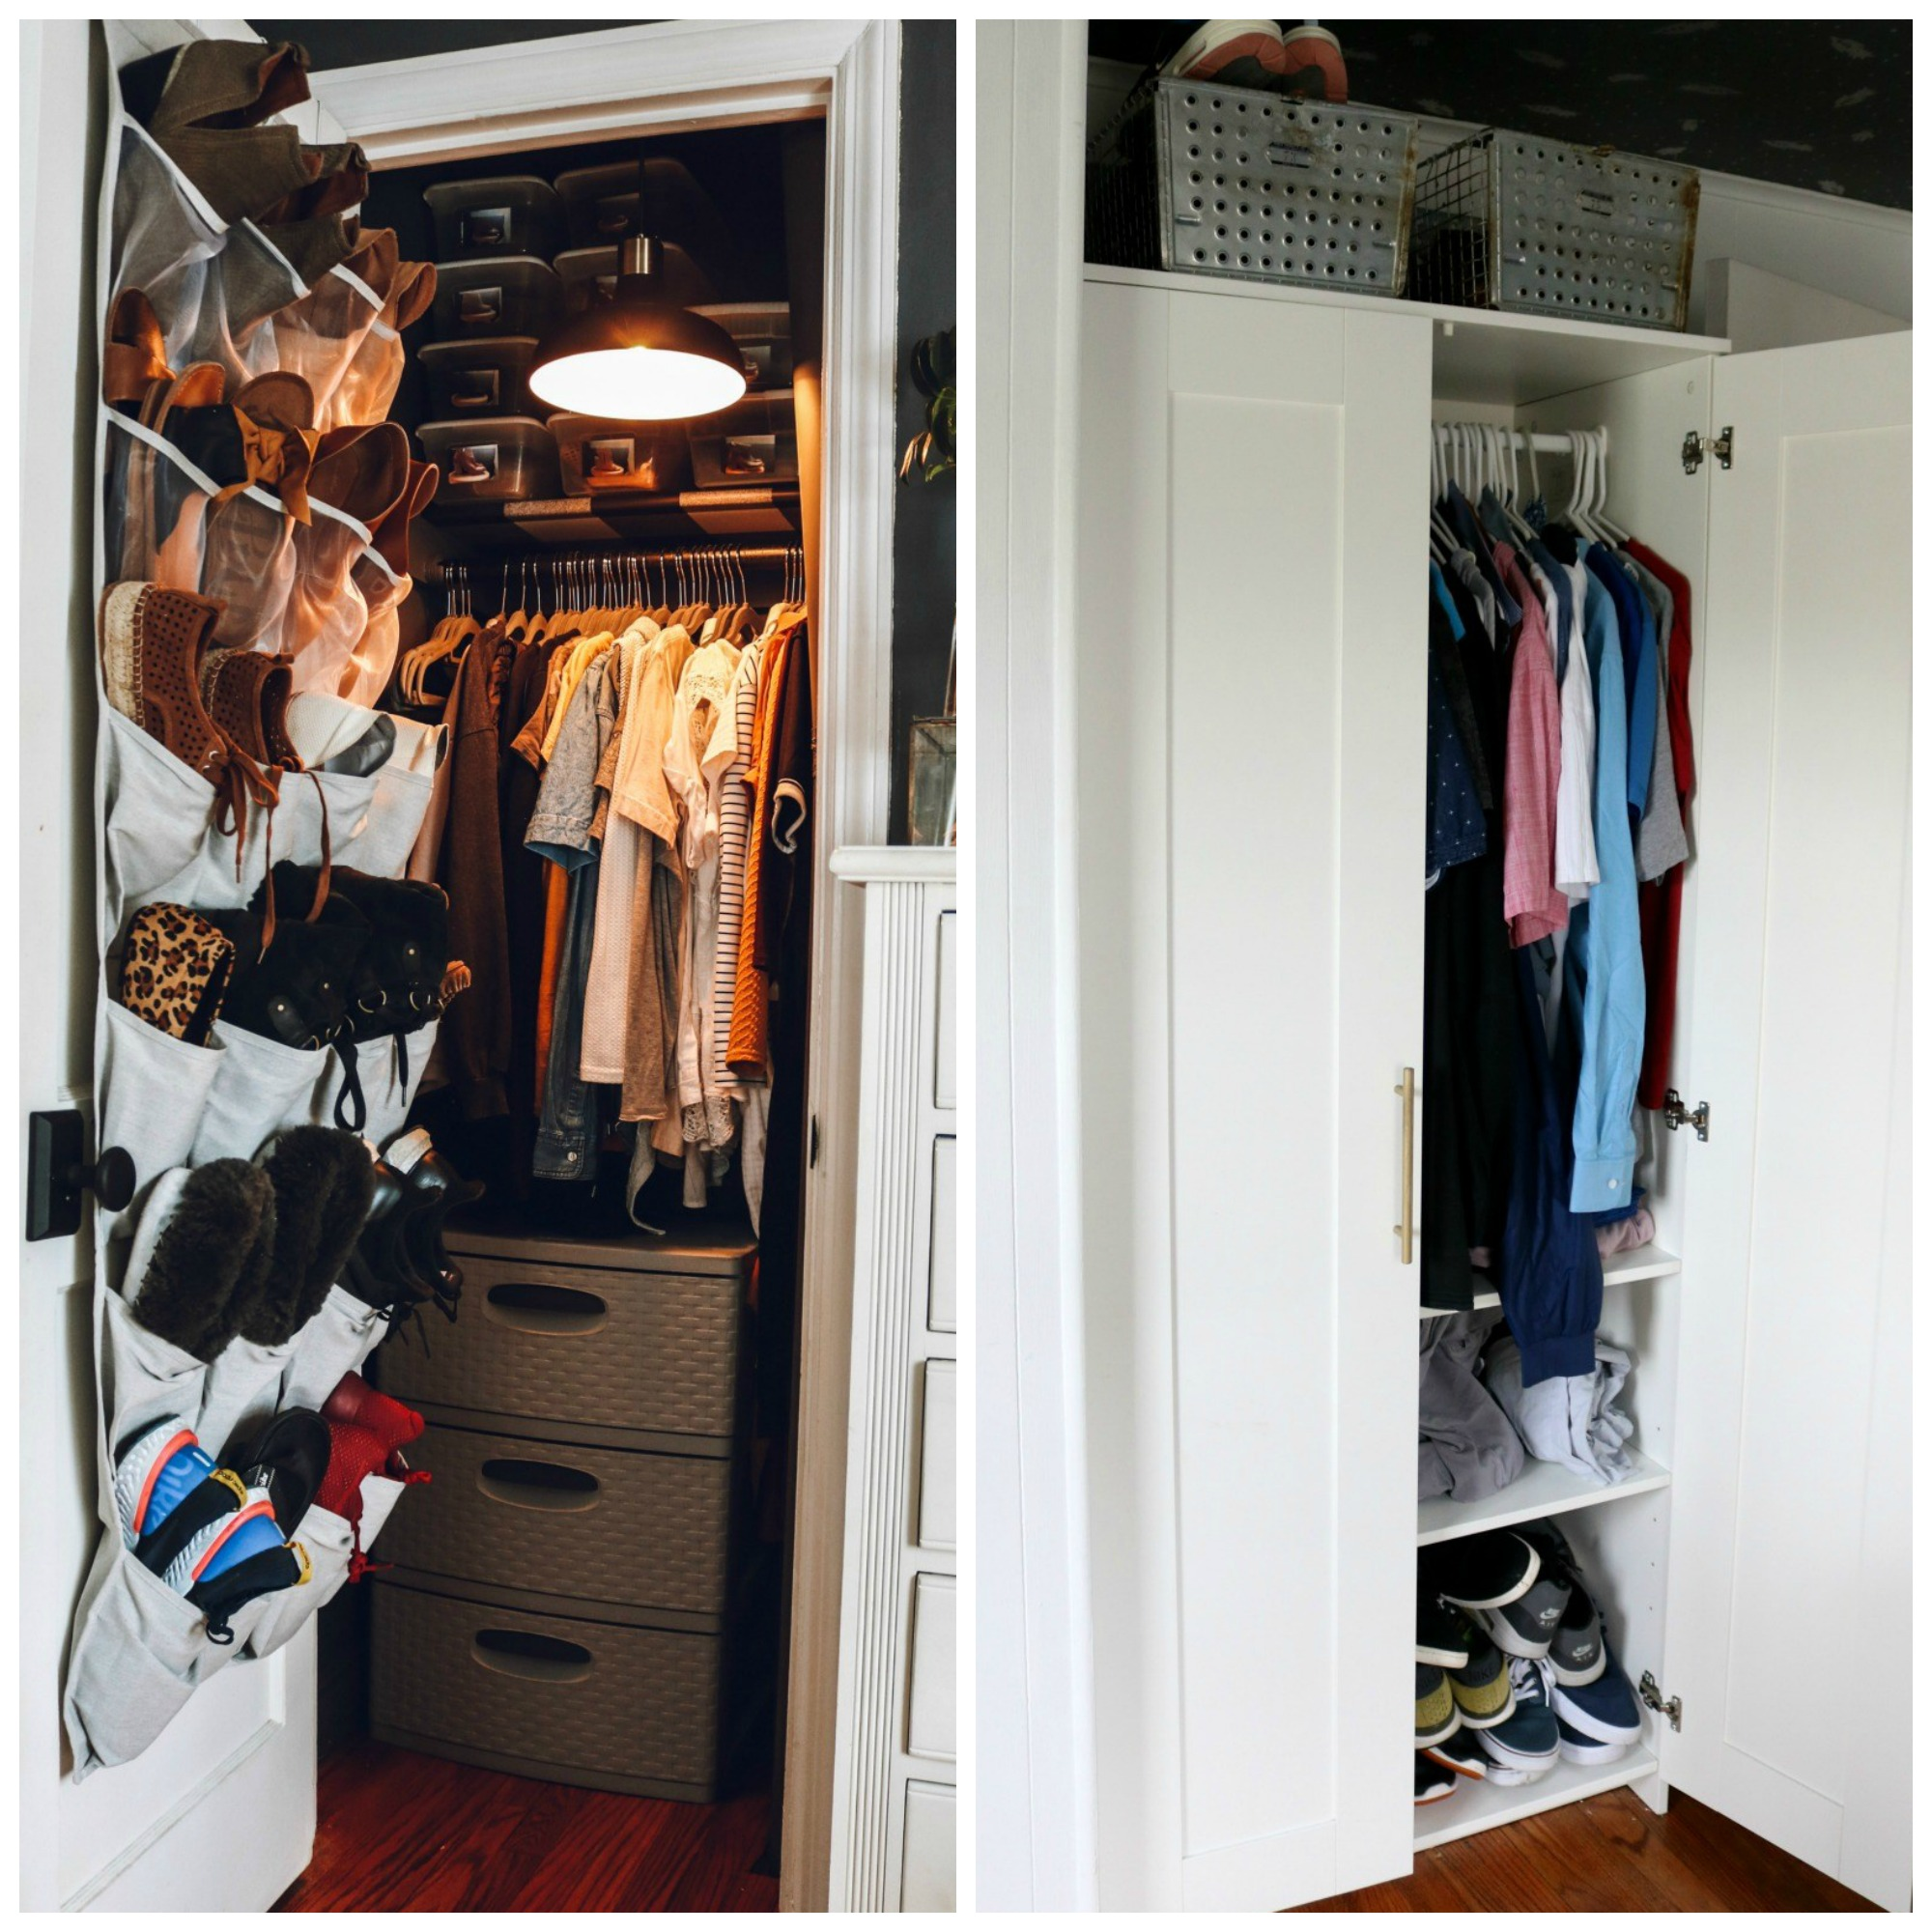 Our new Master Closet- IKEA PAX System